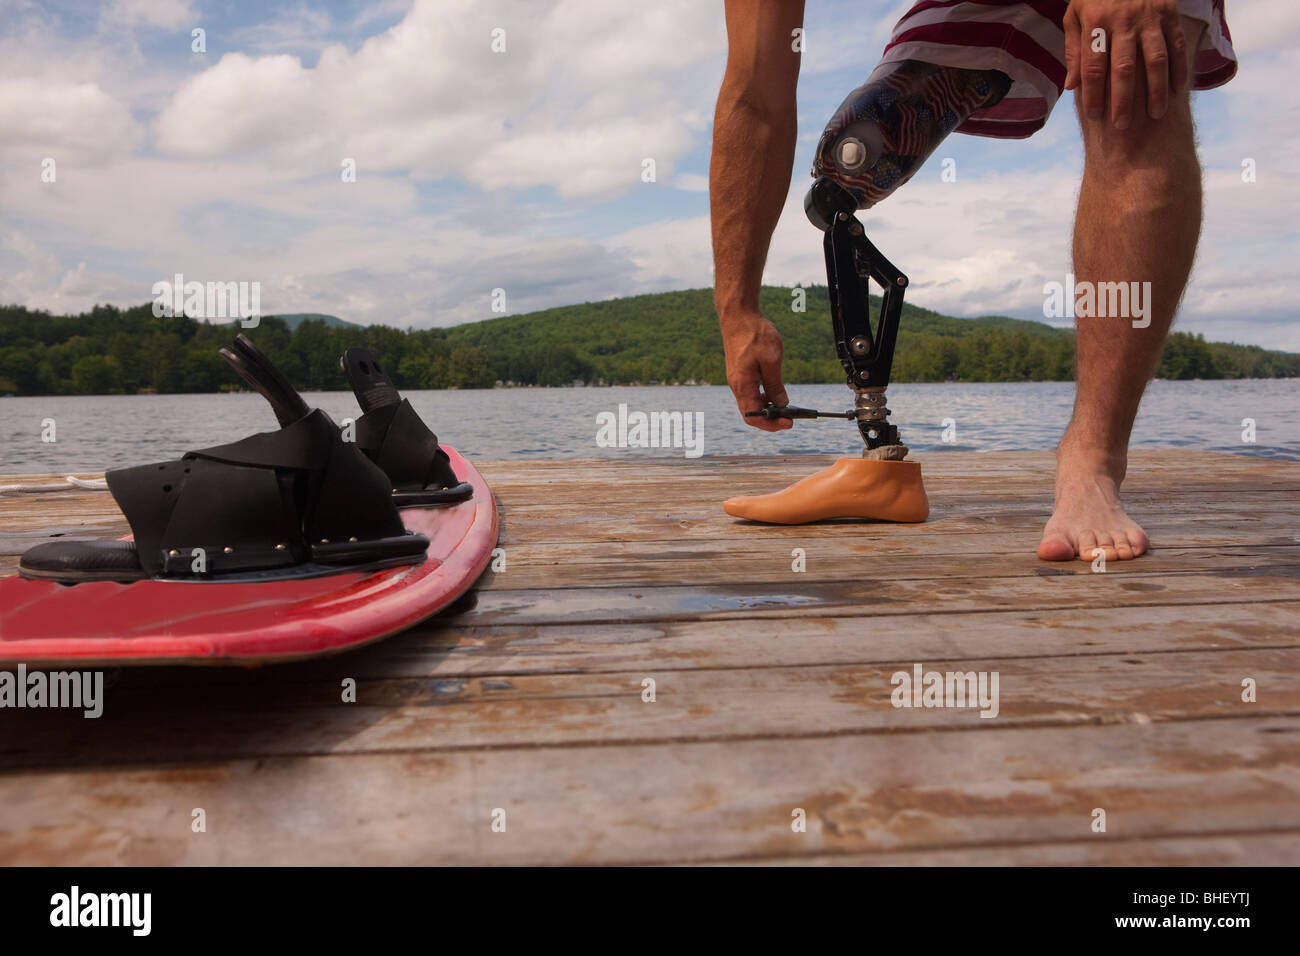 Disabled athlete adjusting his artificial leg on a dock - Stock Image